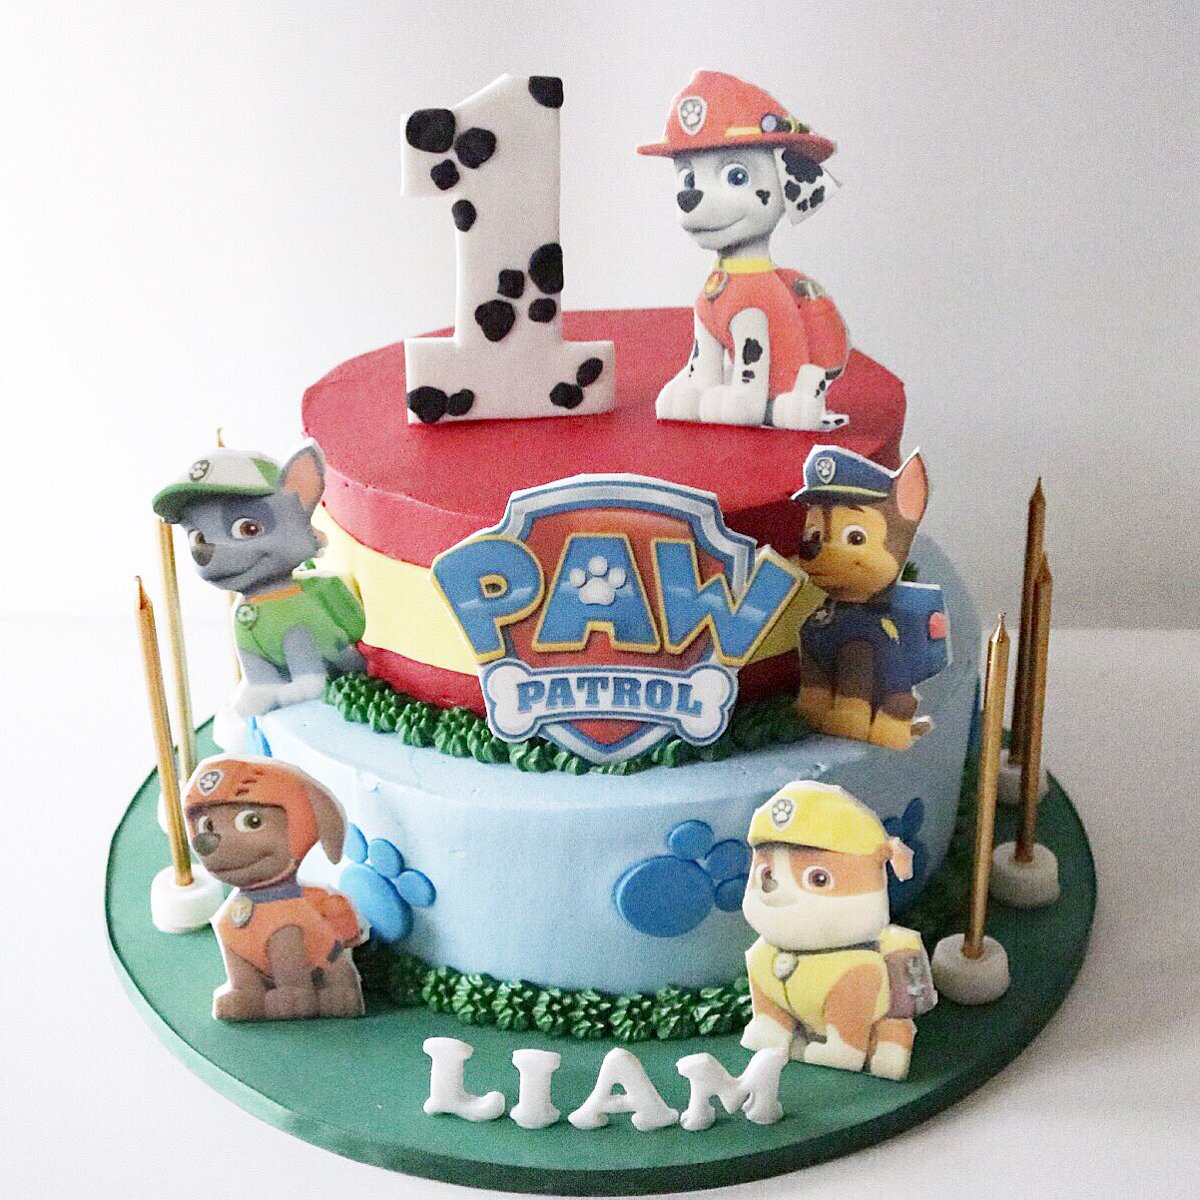 Image result for happy birthday liam cake